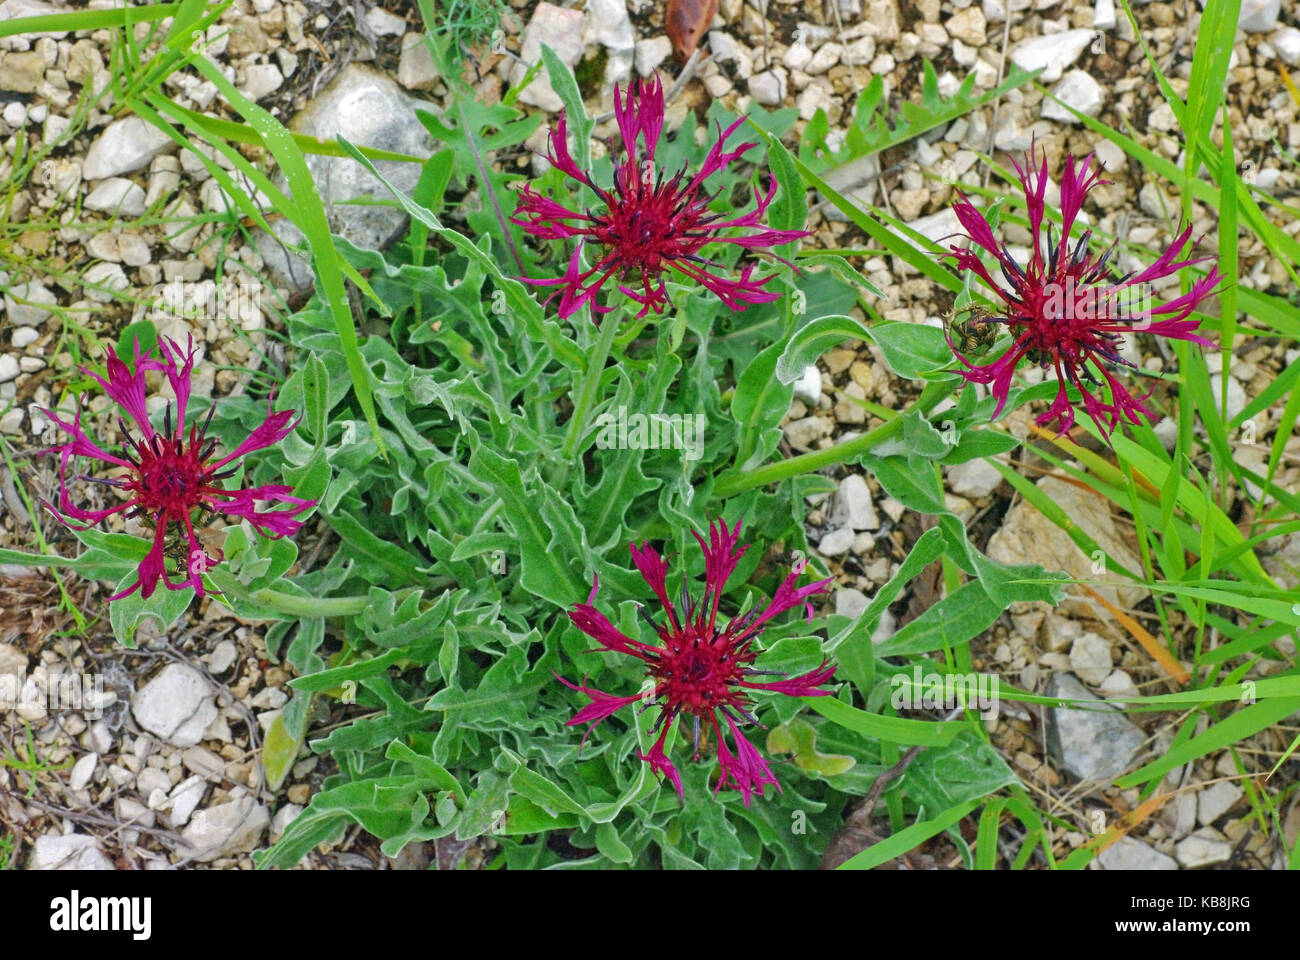 a wildflower from the genus Centaurea, the Knapweeds, family Asteraceae (Compositae) - Stock Image